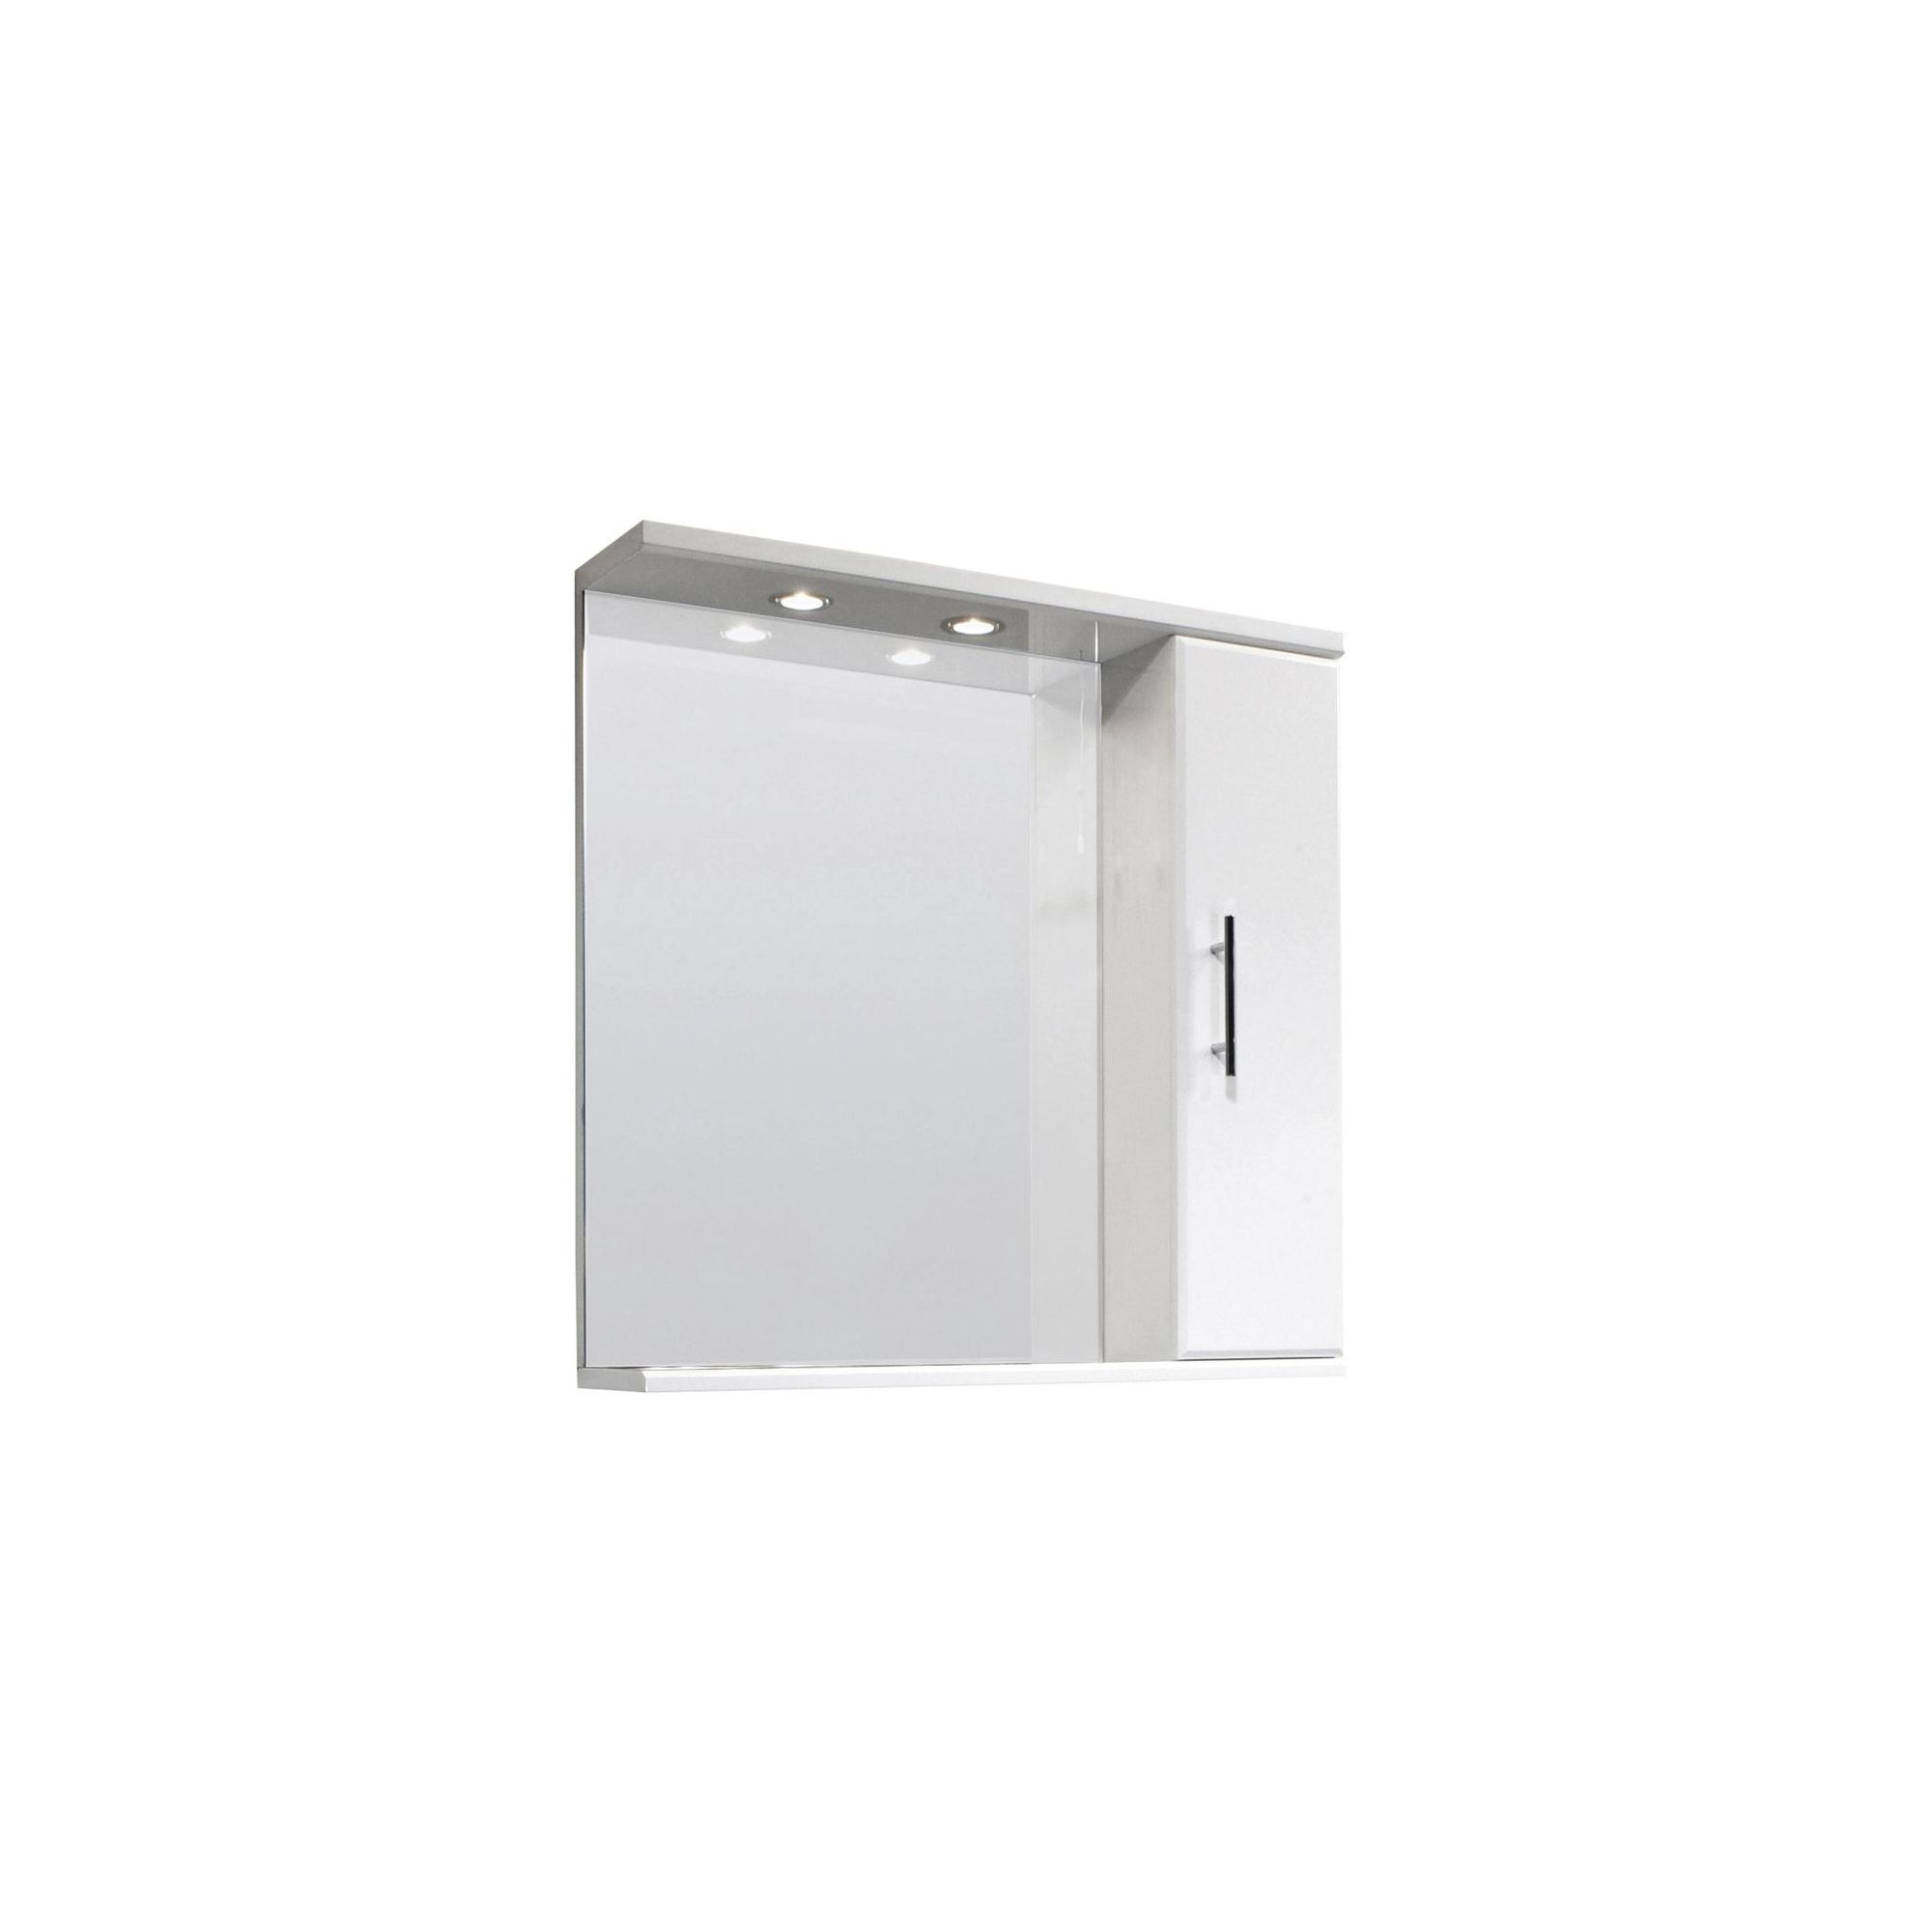 Premier Illuminated Mirror Vanity Cabinet 750mm High Gloss White